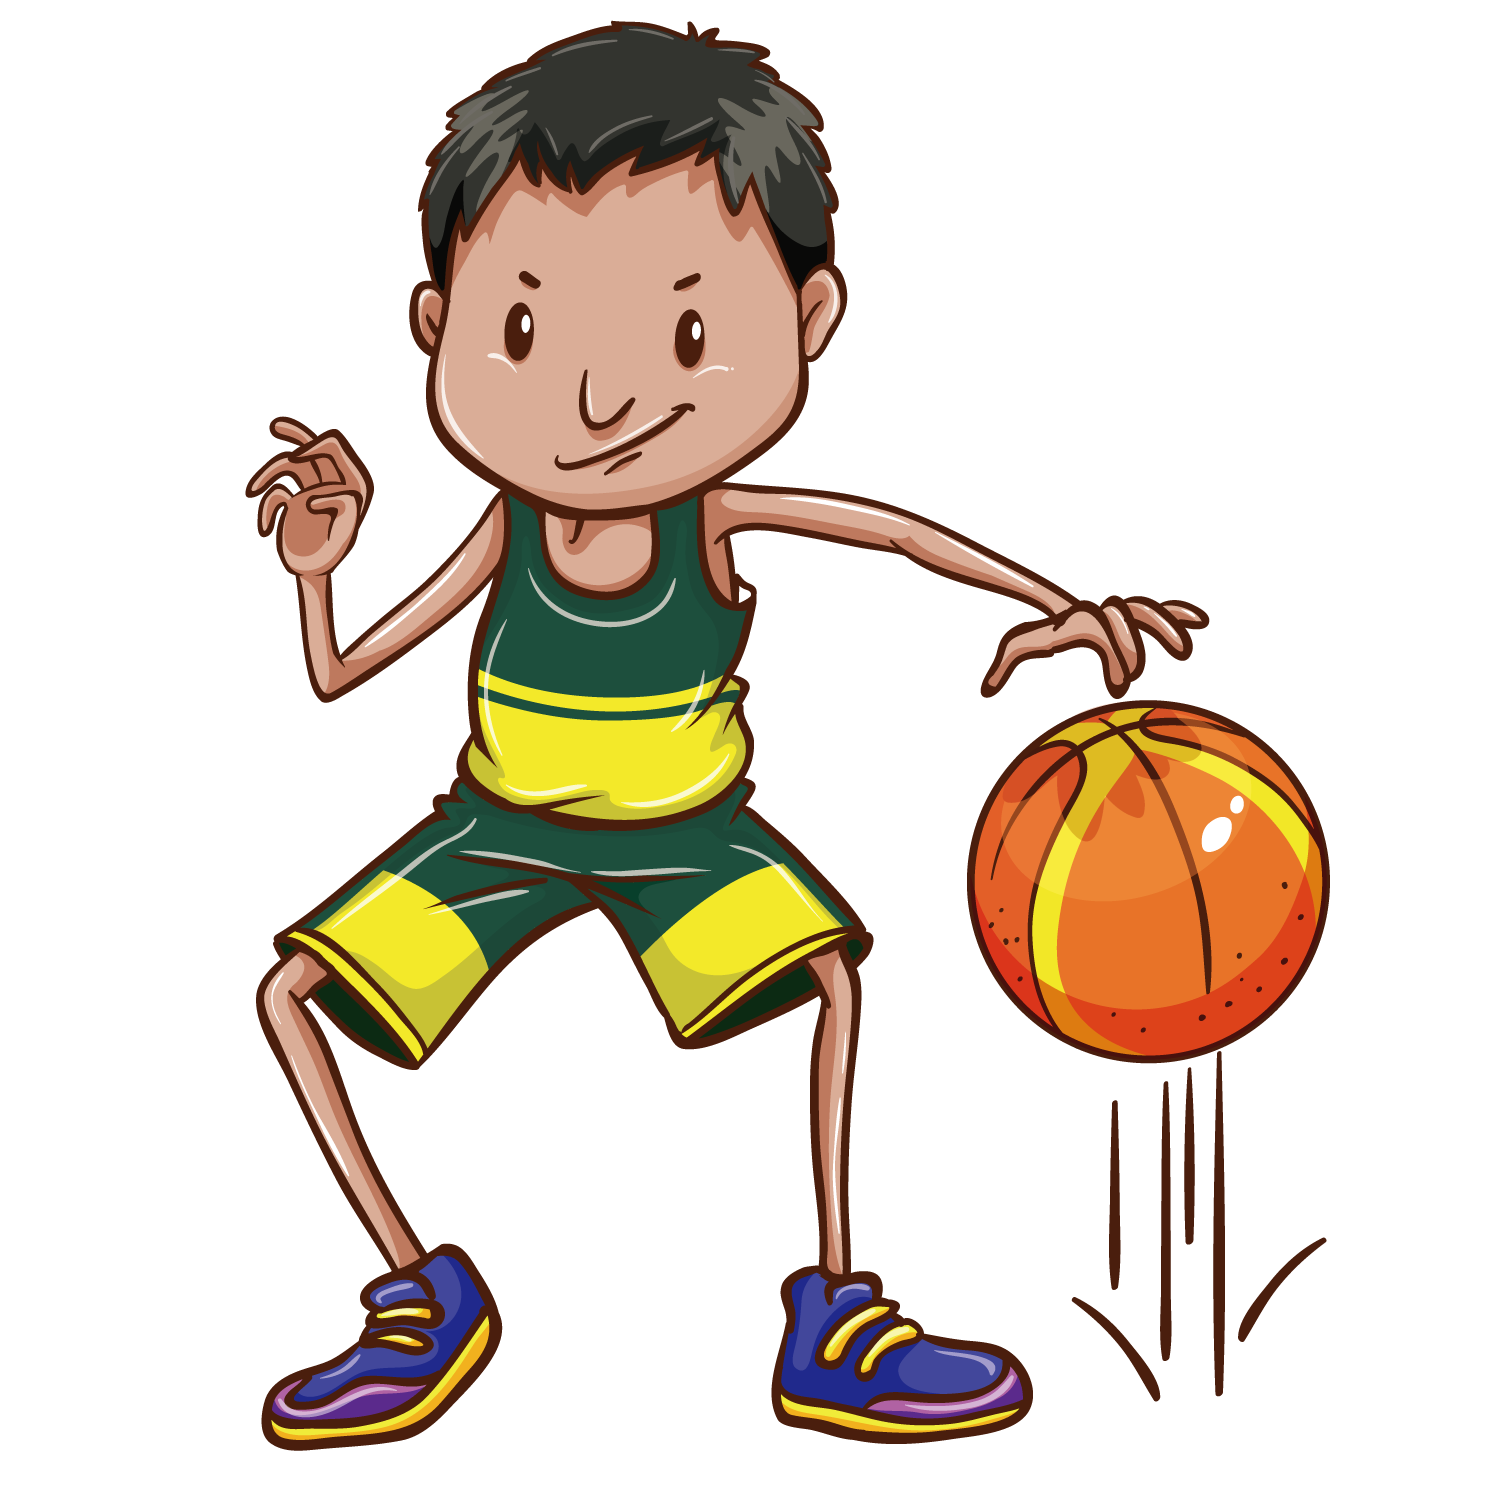 Girl basketball players clipart royalty free stock Basketball Drawing Clip art - Basketball boy 1500*1500 transprent ... royalty free stock